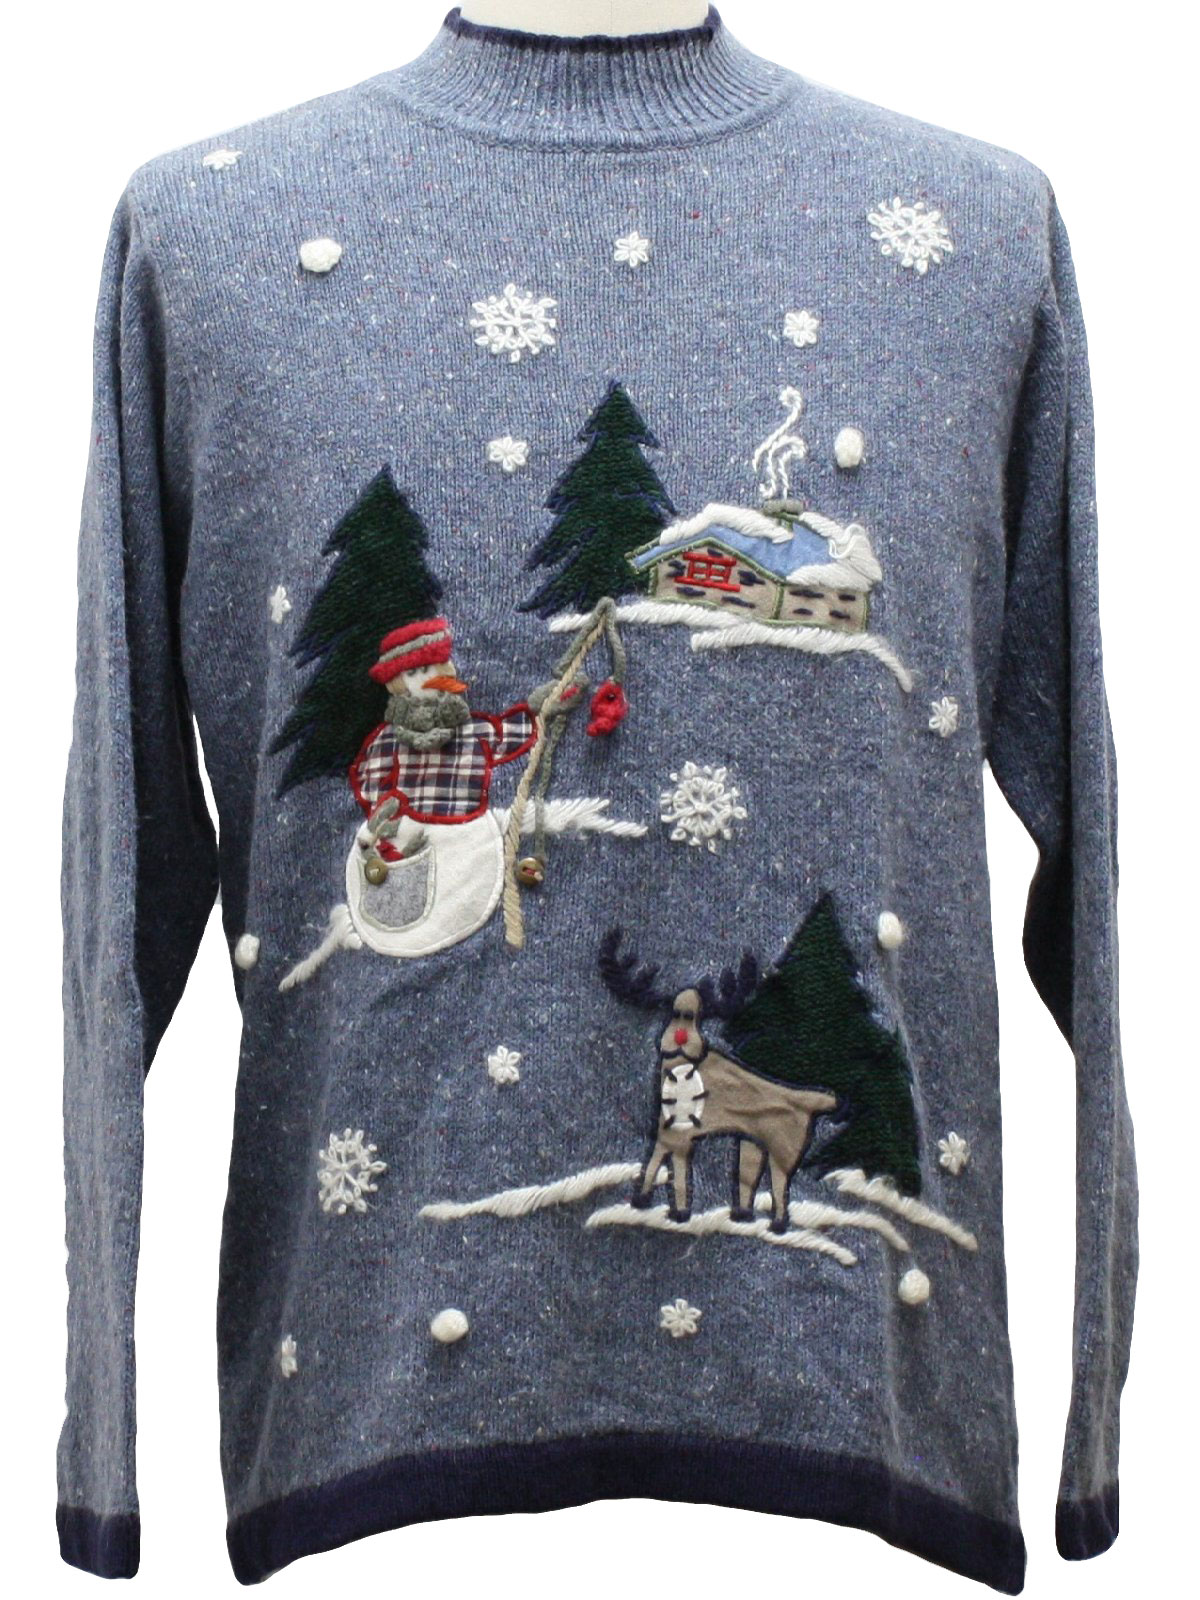 17 Ugly Christmas Sweaters Celebrating the Great Outdoors